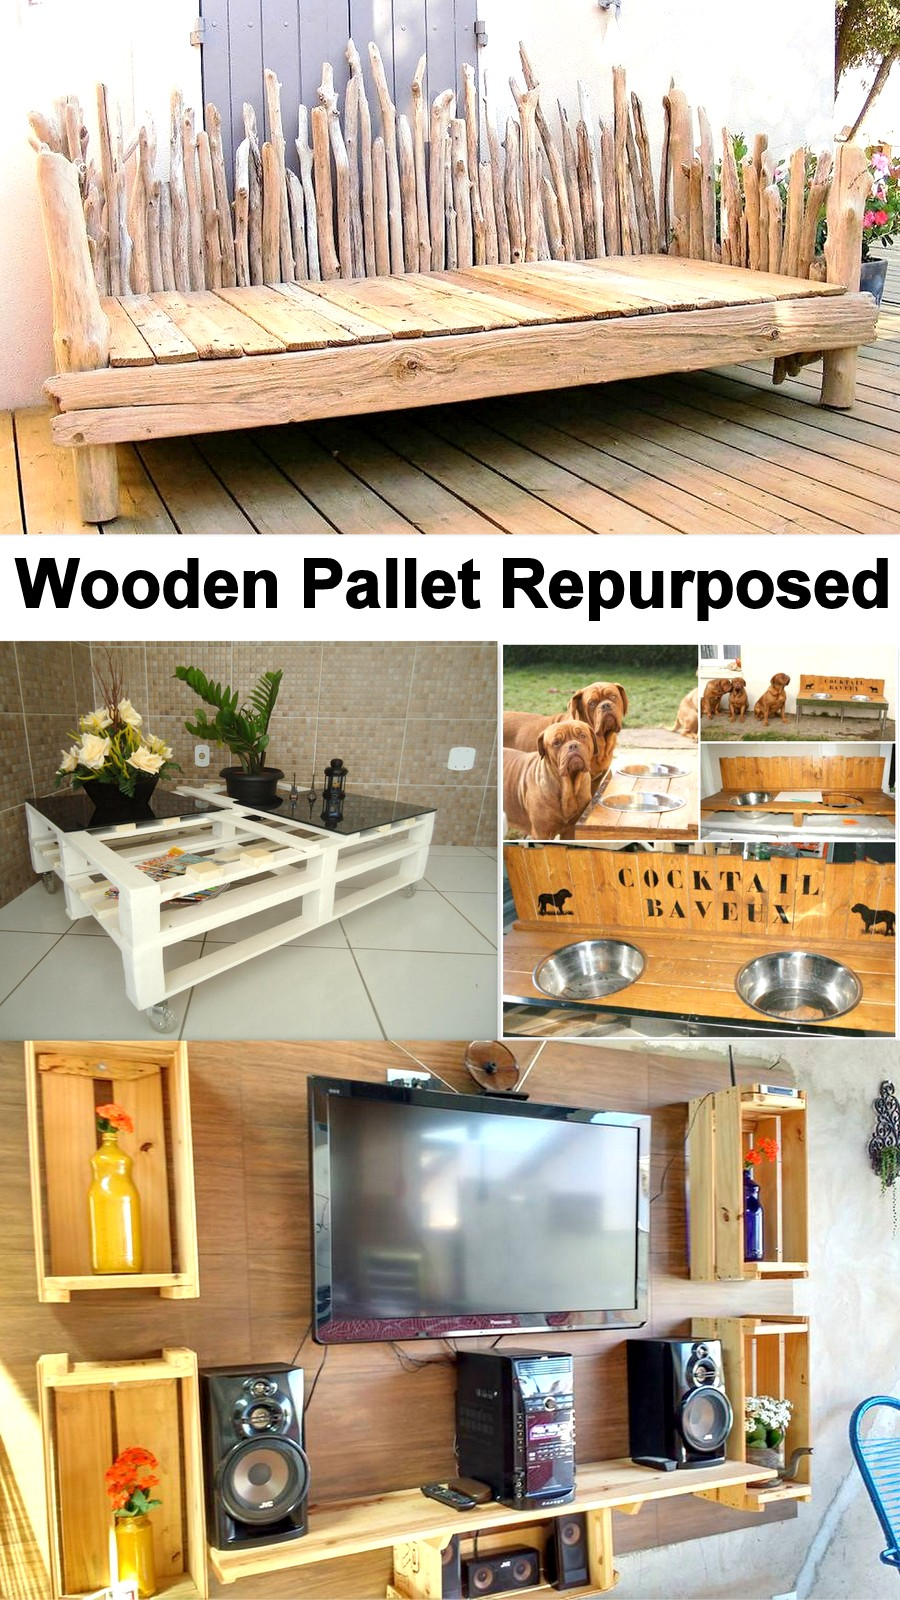 Wooden Pallet Repurposed